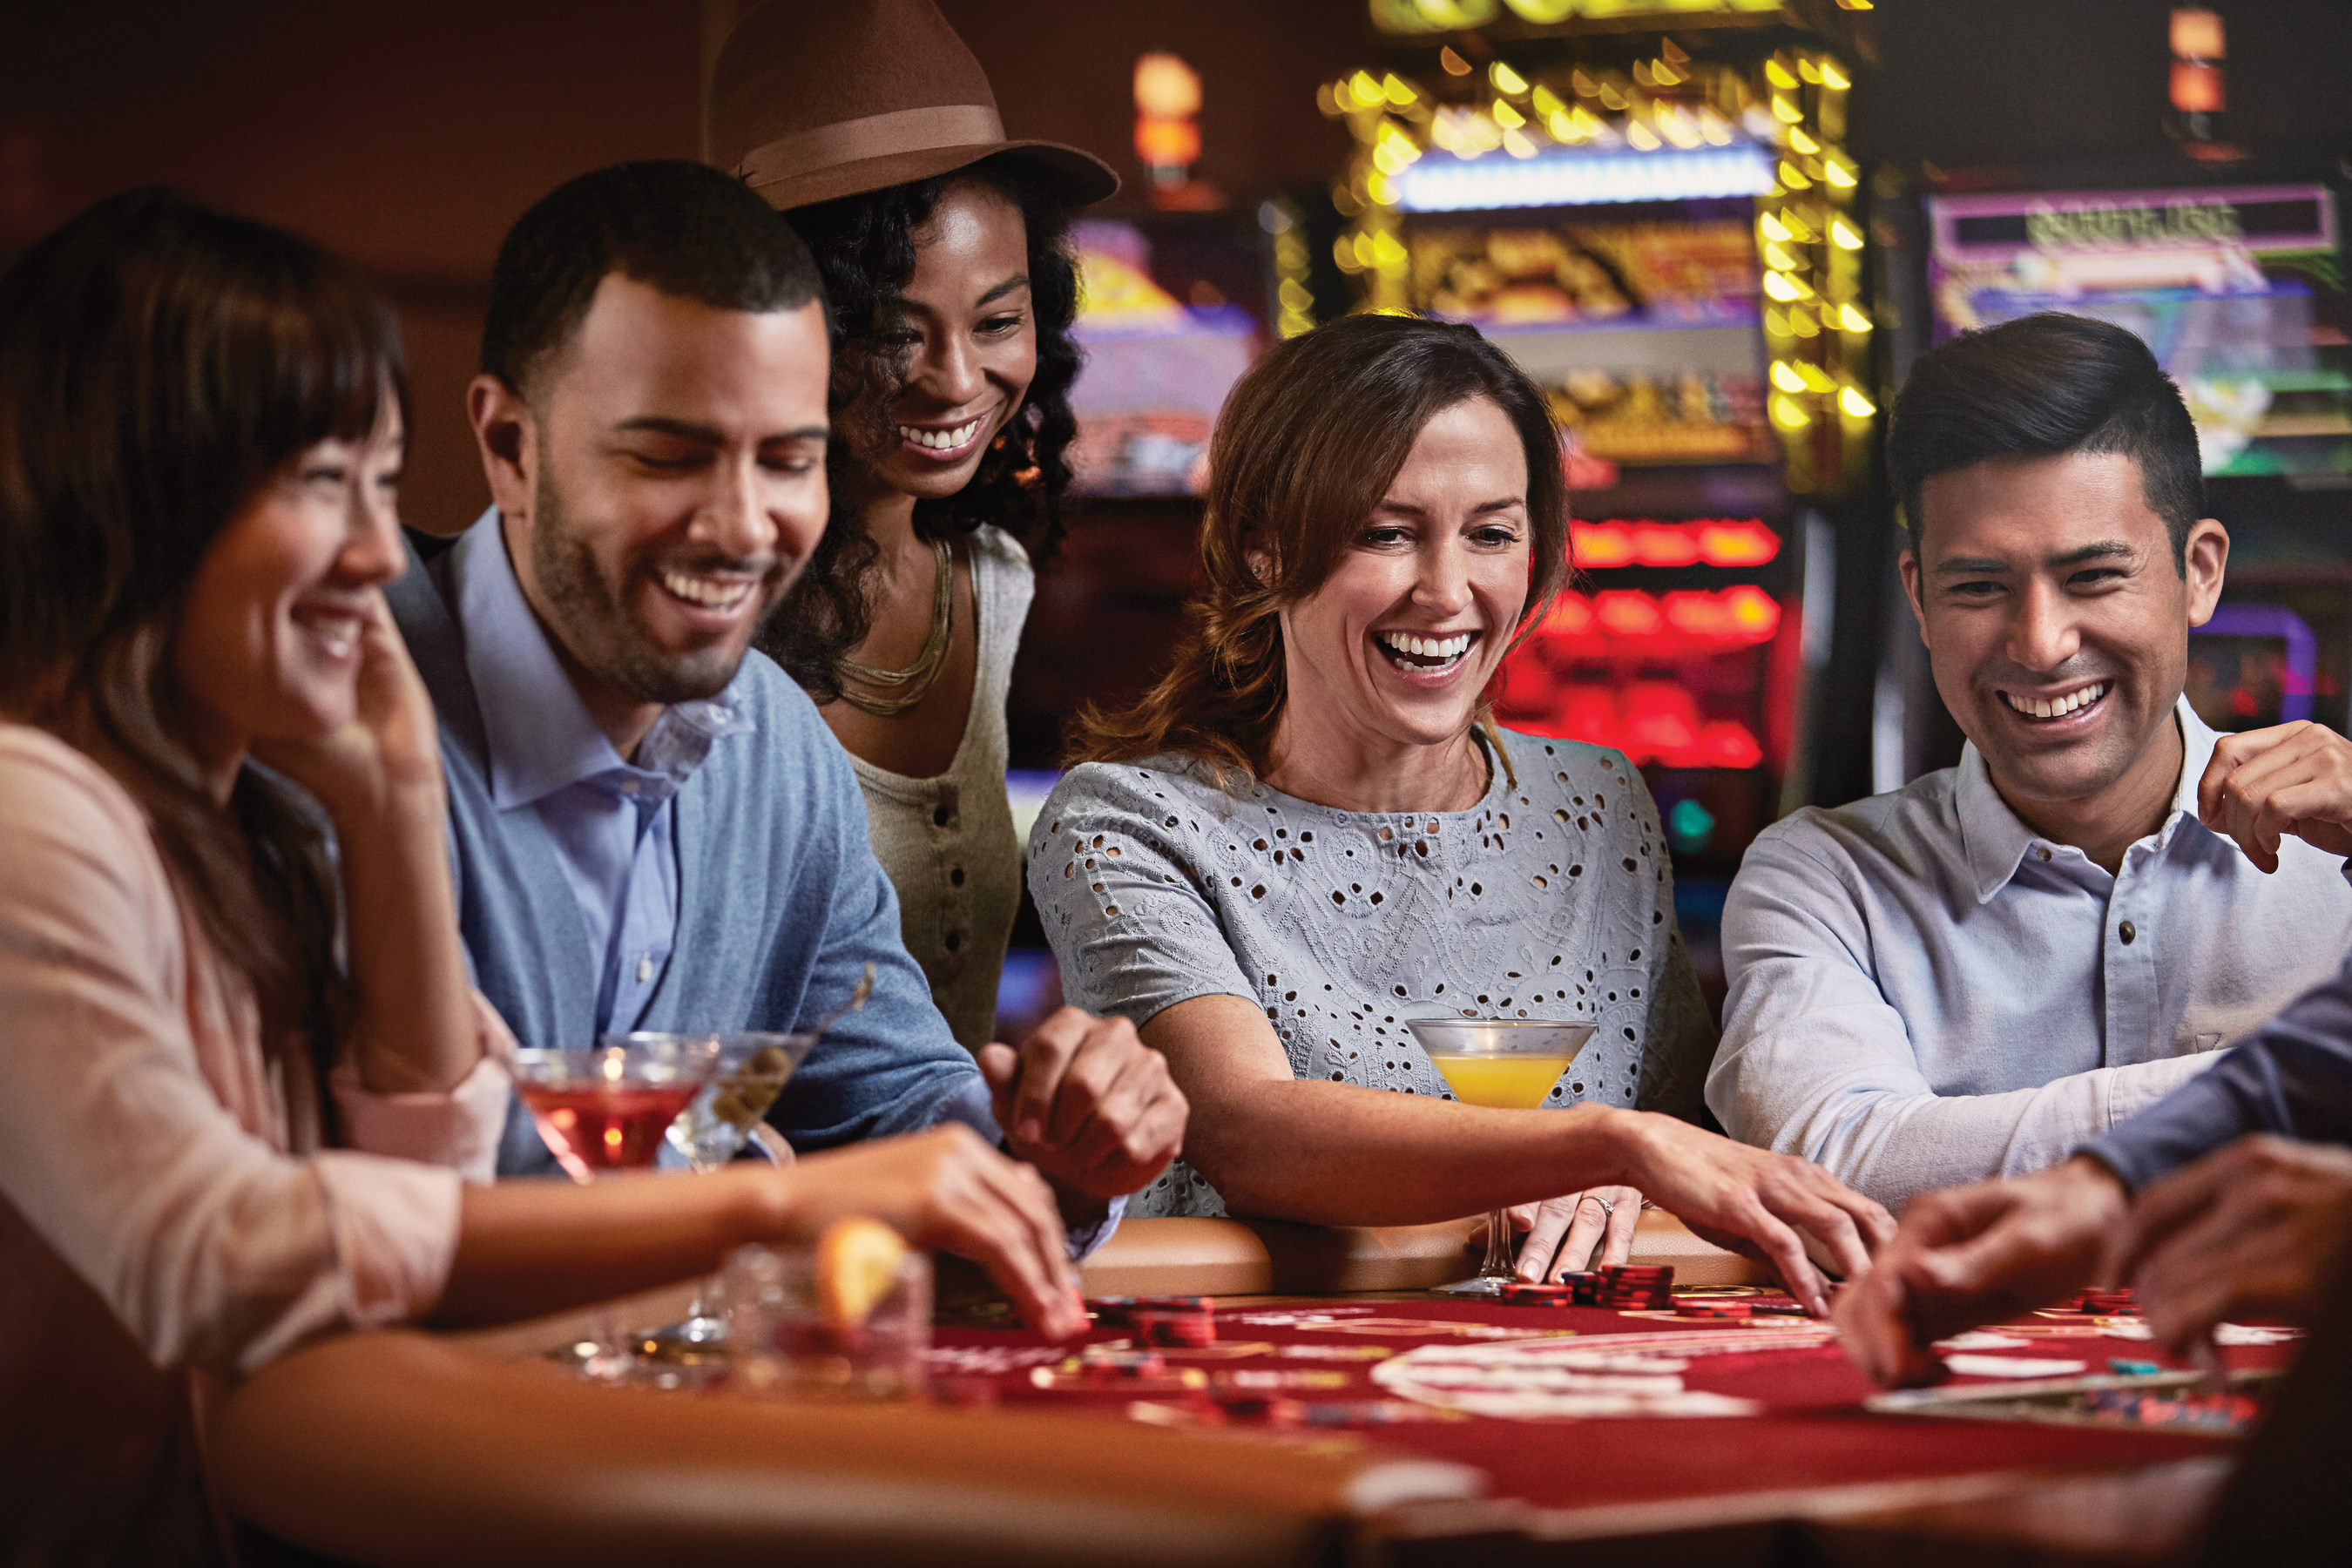 A Sure Bet Cruise Ship Casinos Pay Off With Jackpots Friends And